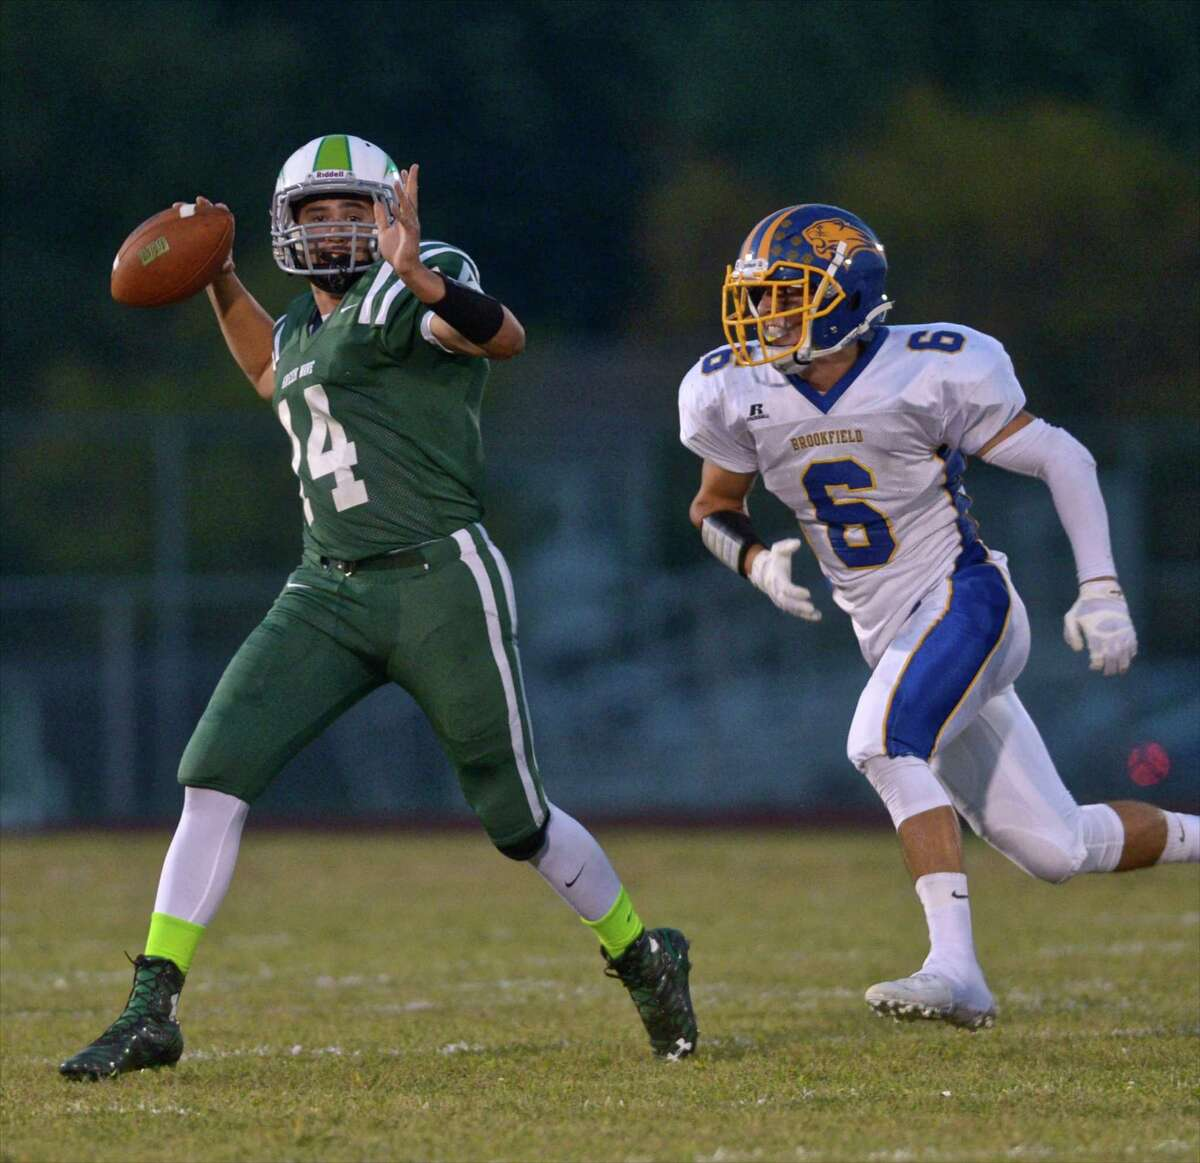 A week after having his way with the Brookfield defense, New Milford's Tyler Hansen was at it again on the road against Bunnell in the Green Wave's first win of the season, 35-21. A dual threat with his arm and his legs, the senior senior-caller threw three touchdowns and ran for two more to bring his three-game all-purpose touchdown total to 10, and his latest performance gave the Green Wave their first win over the Bulldogs since 2001.